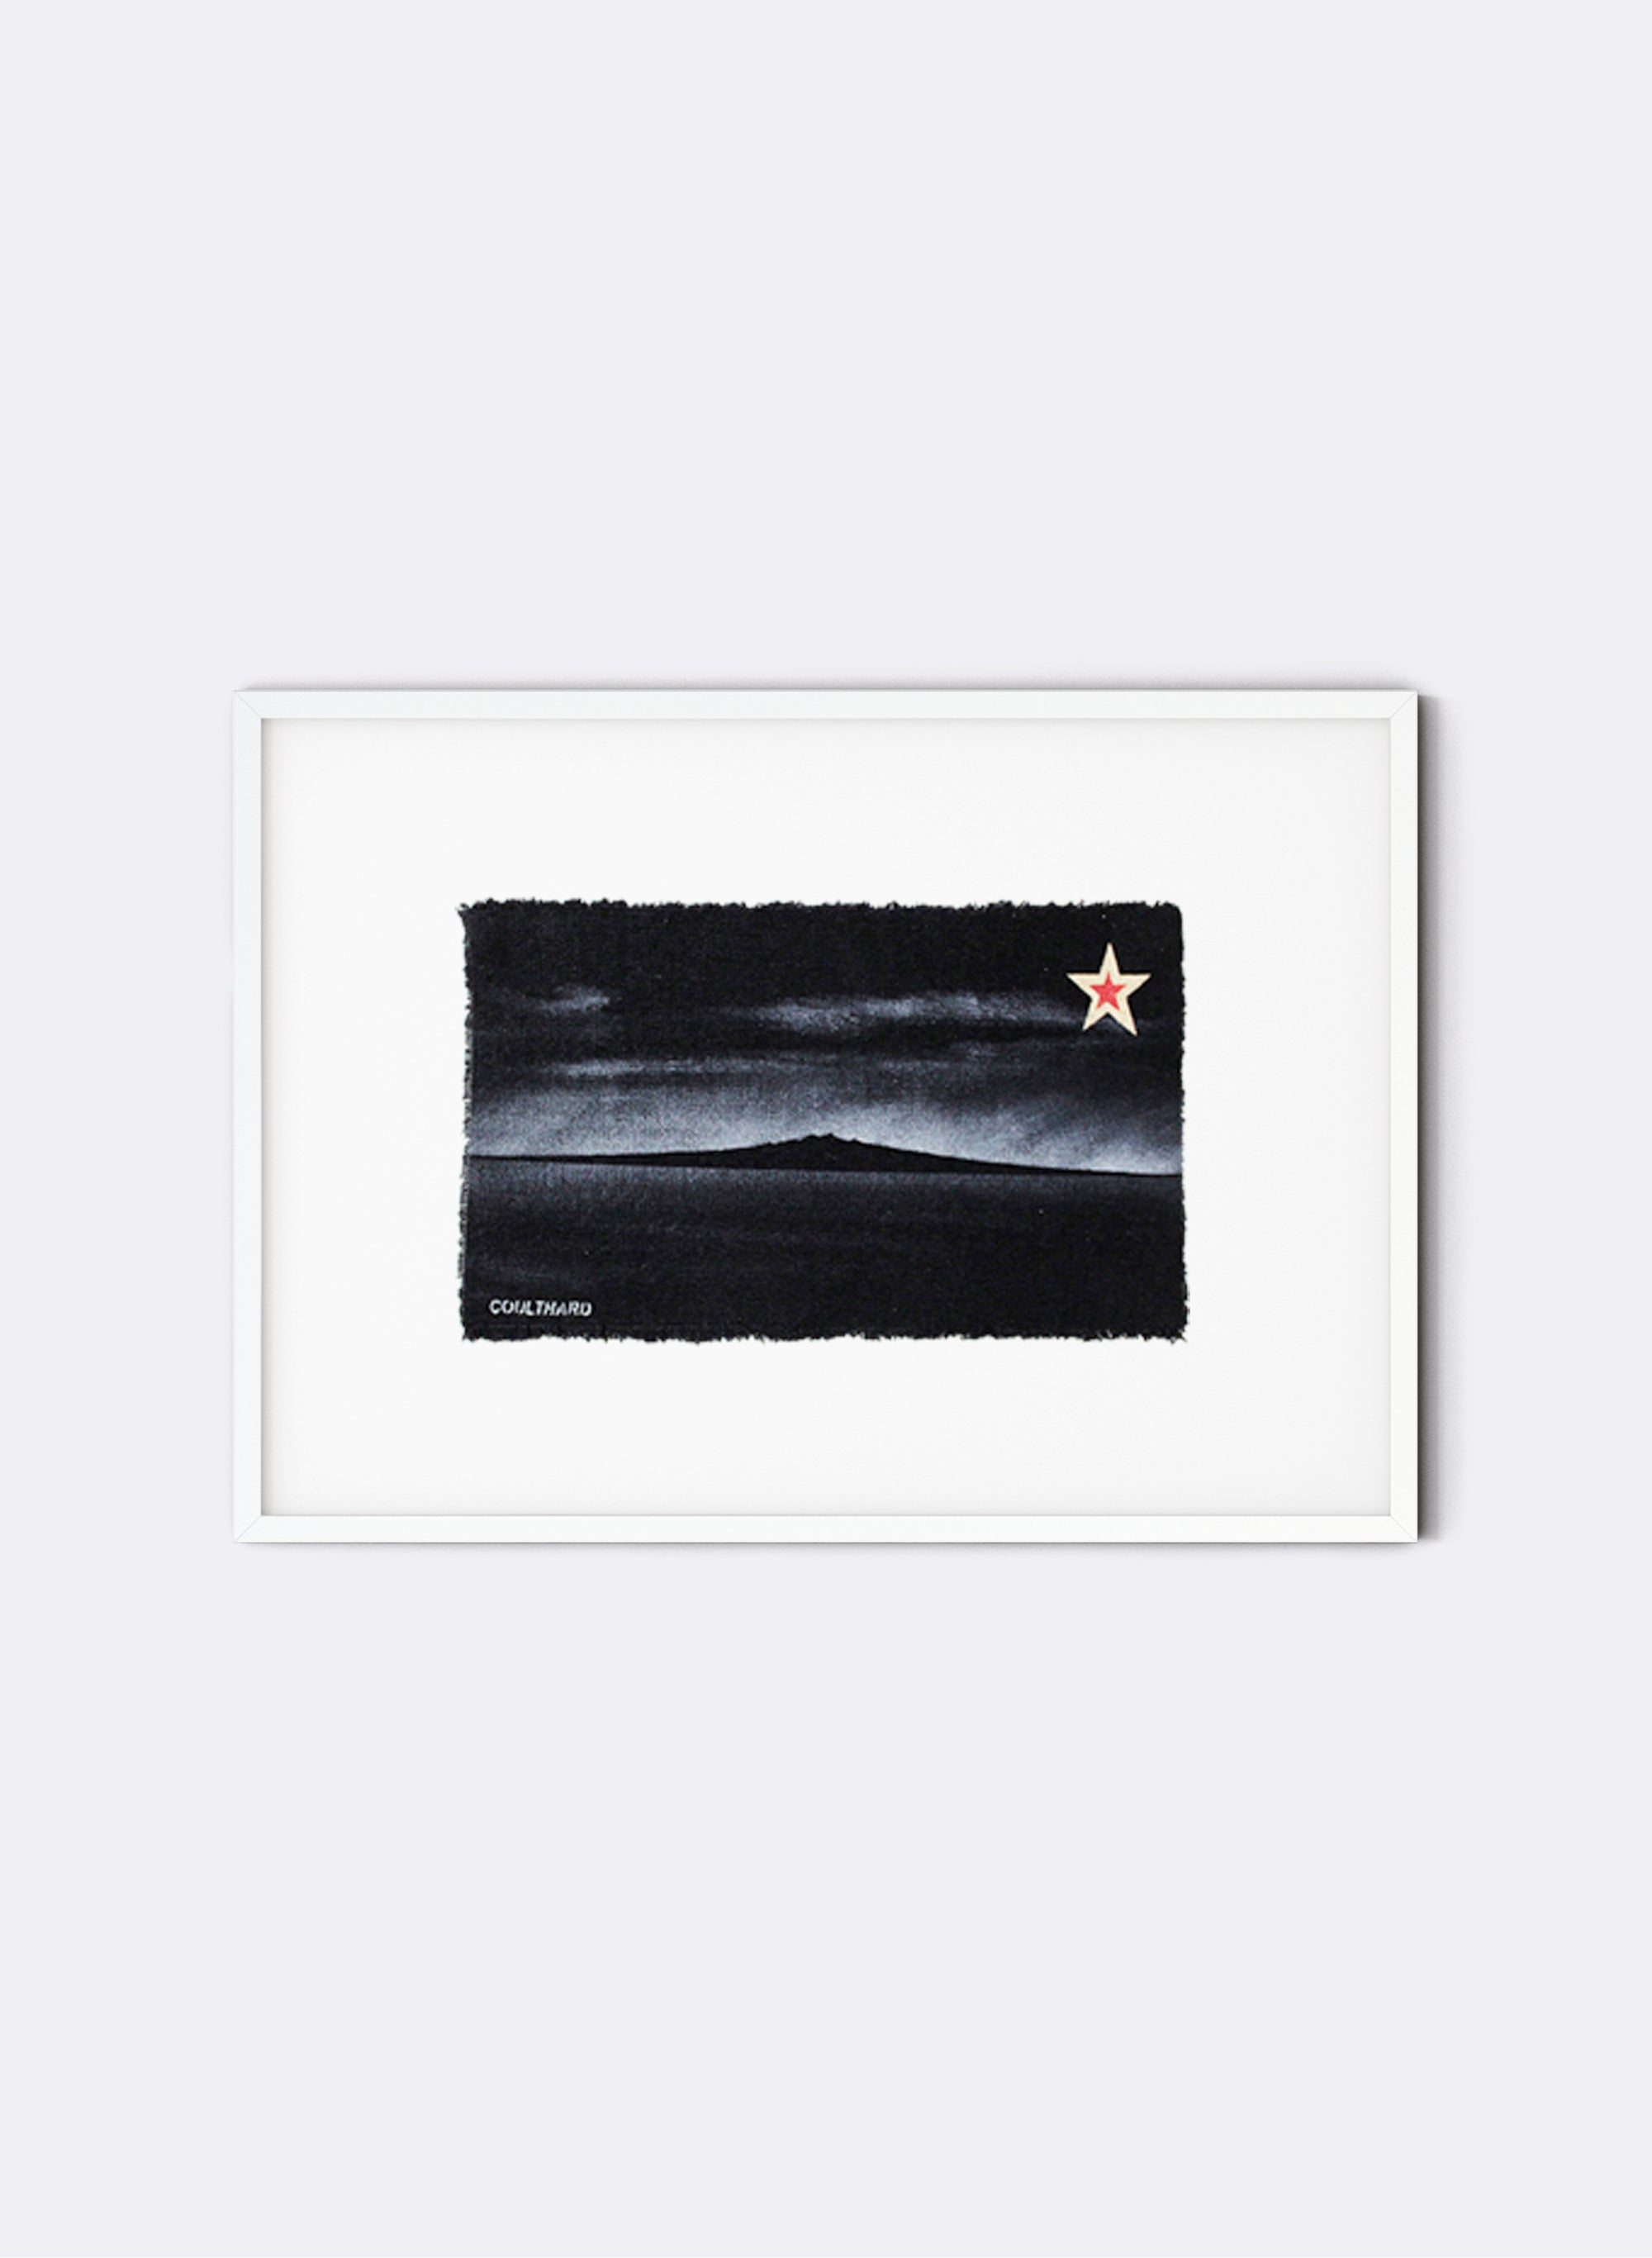 Rangitoto - Postcard Artwork - Black